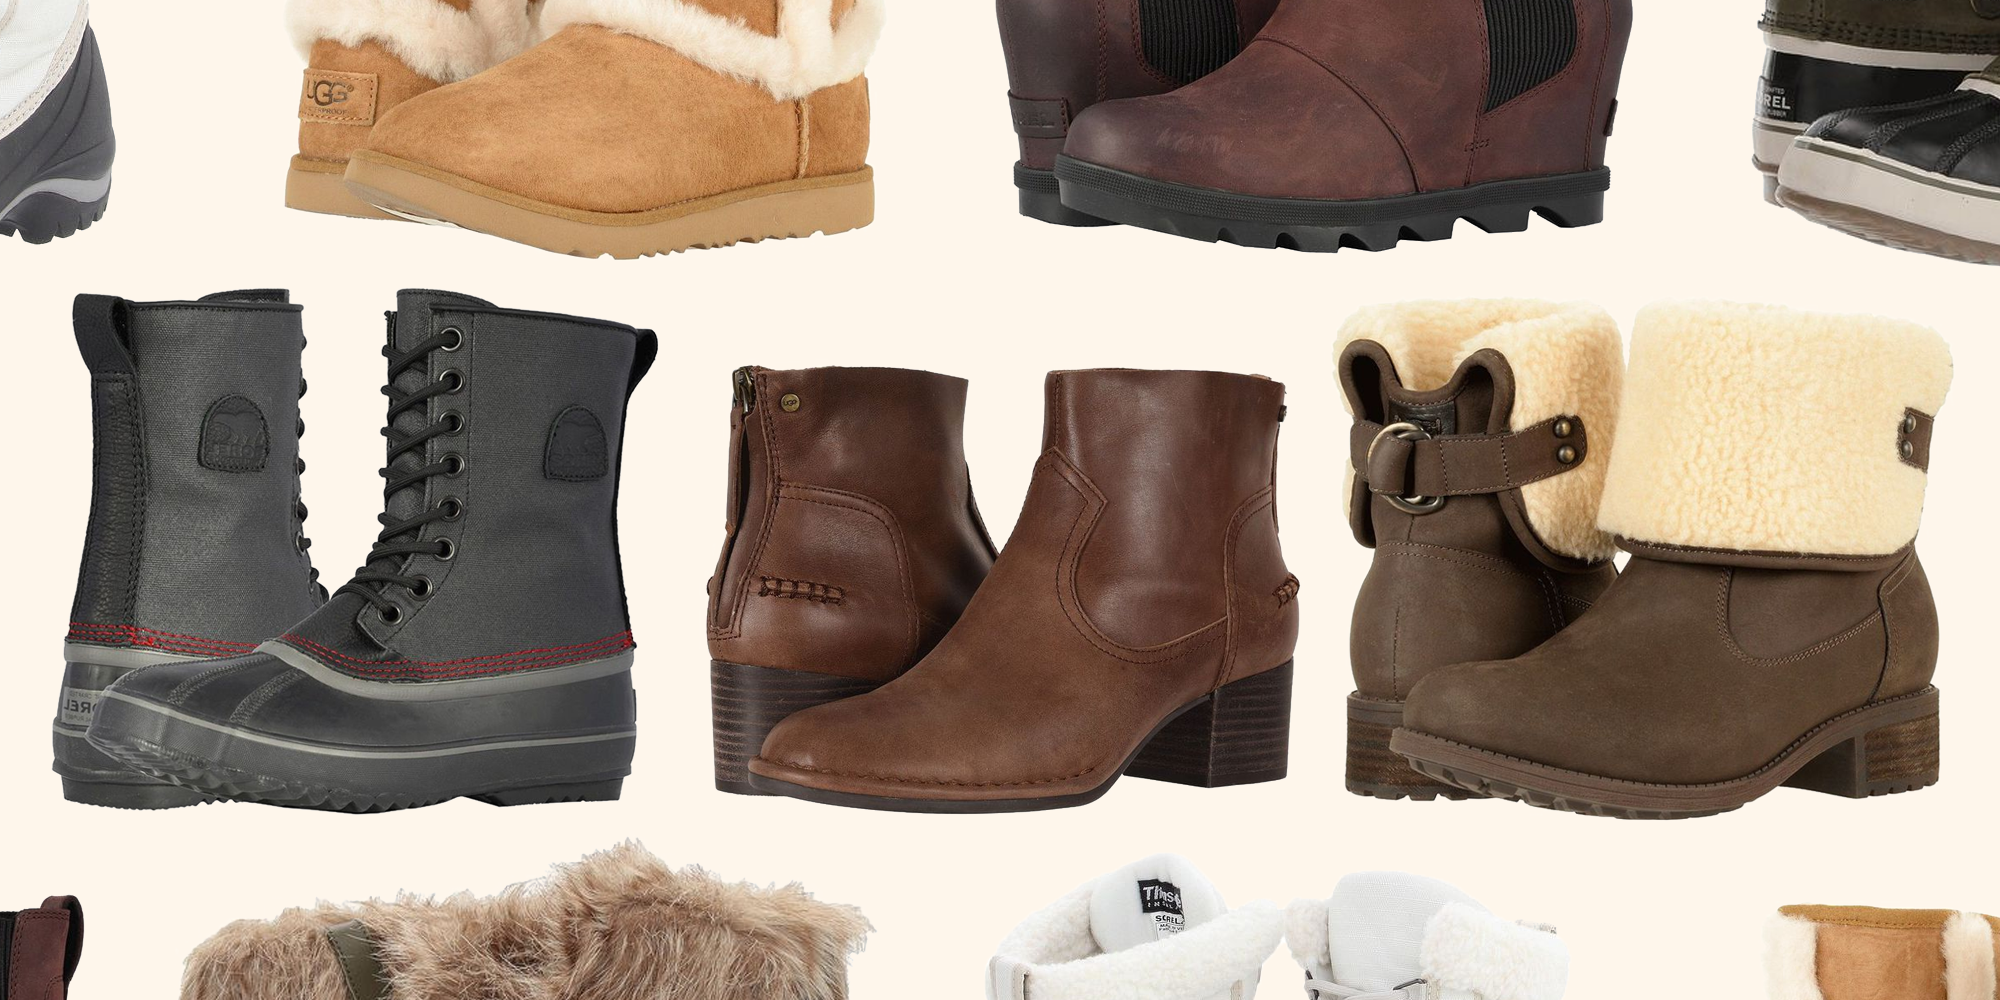 1866b9cb583 Save Up to 40% on Winter Boots on Zappos - Zappos Boots on Sale